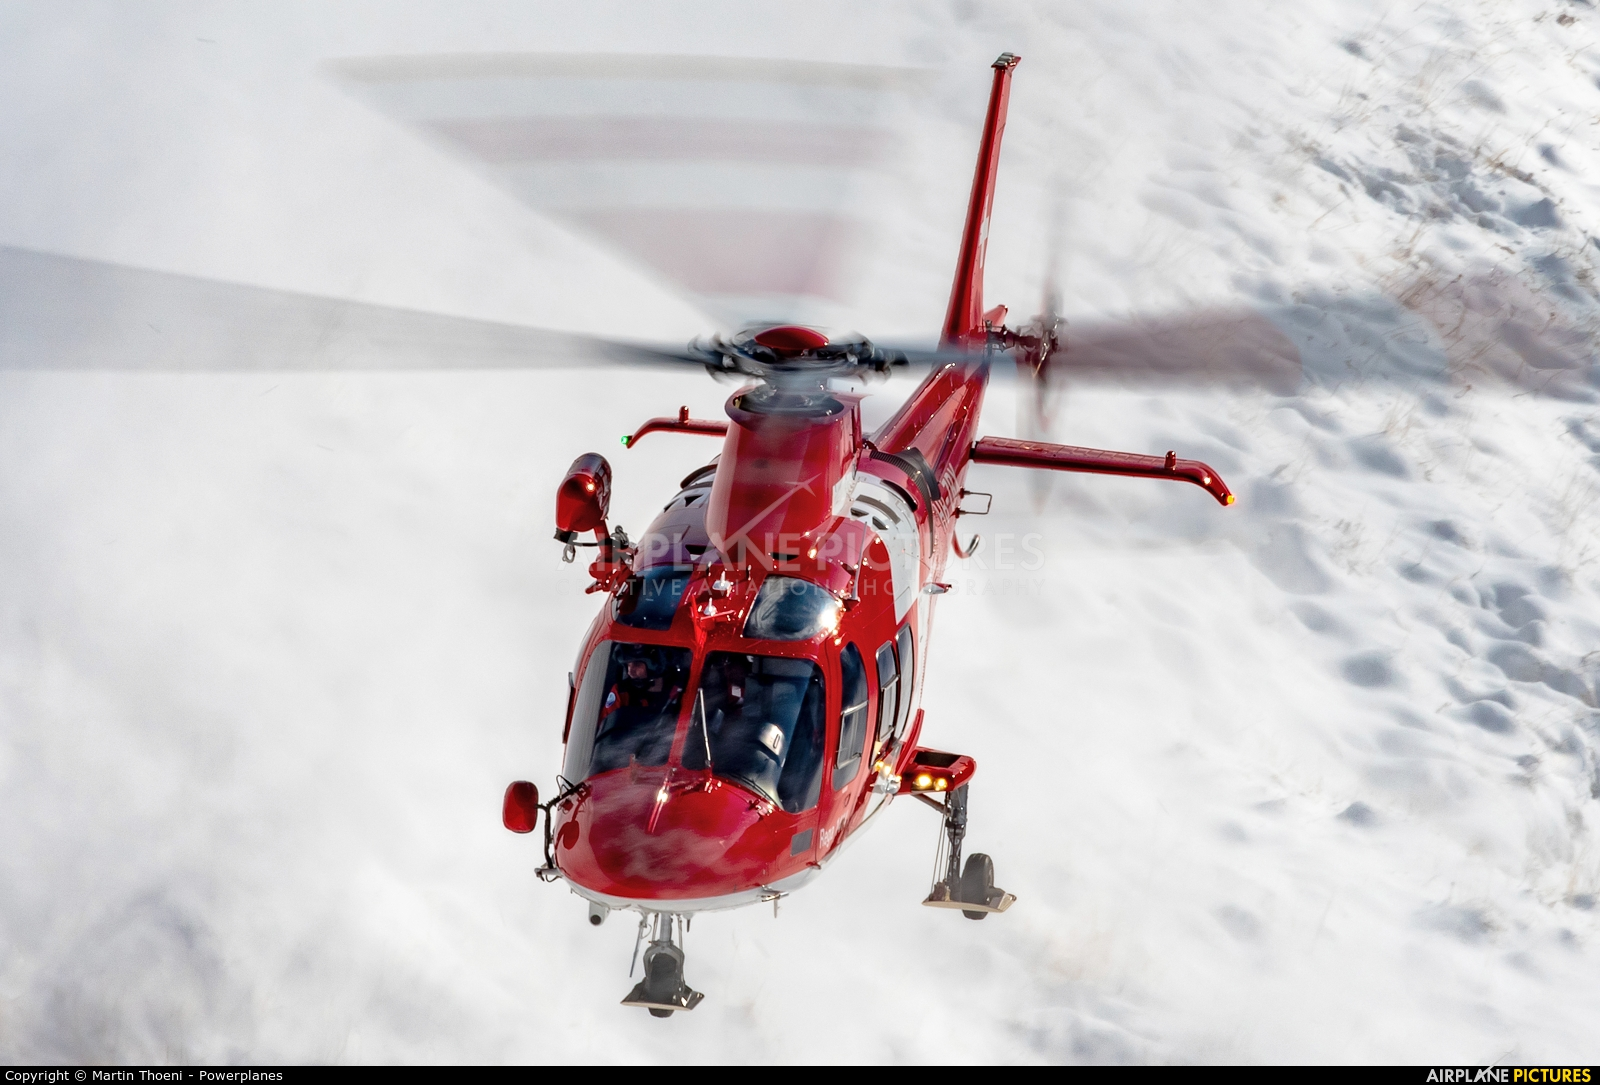 REGA Swiss Air Ambulance  HB-ZRX aircraft at Axalp - Ebenfluh Range